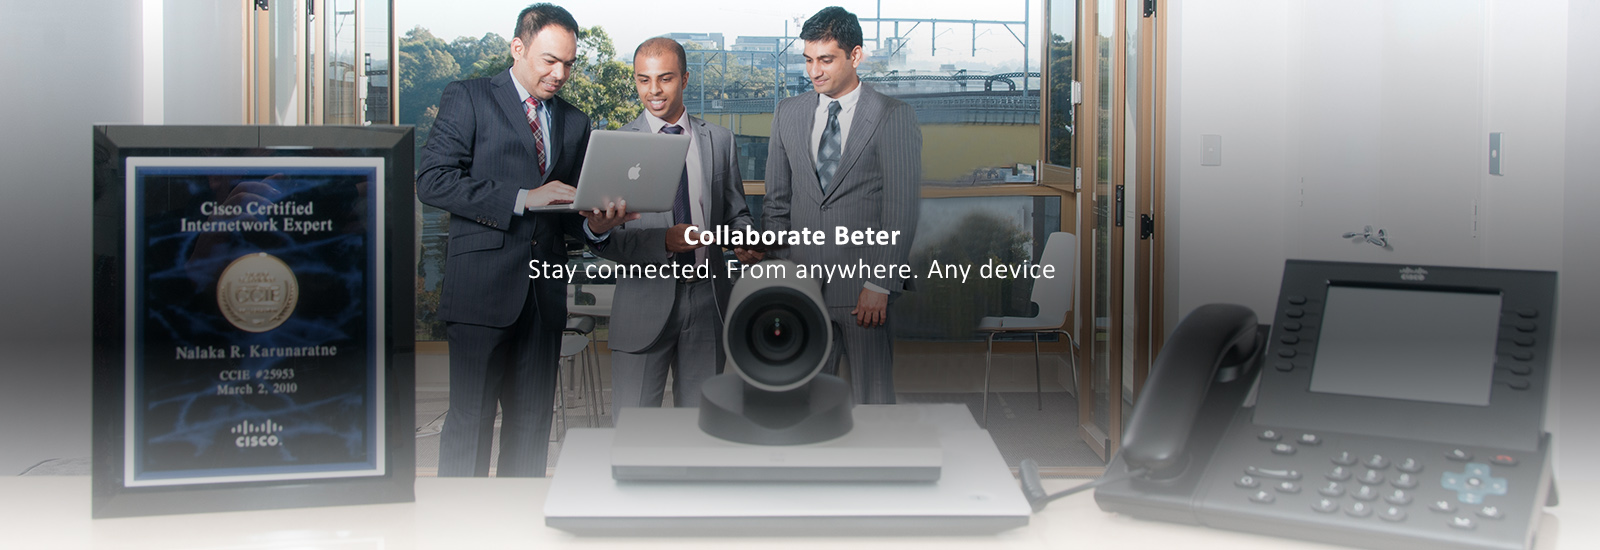 Collaborate Better through Xtreme Networks